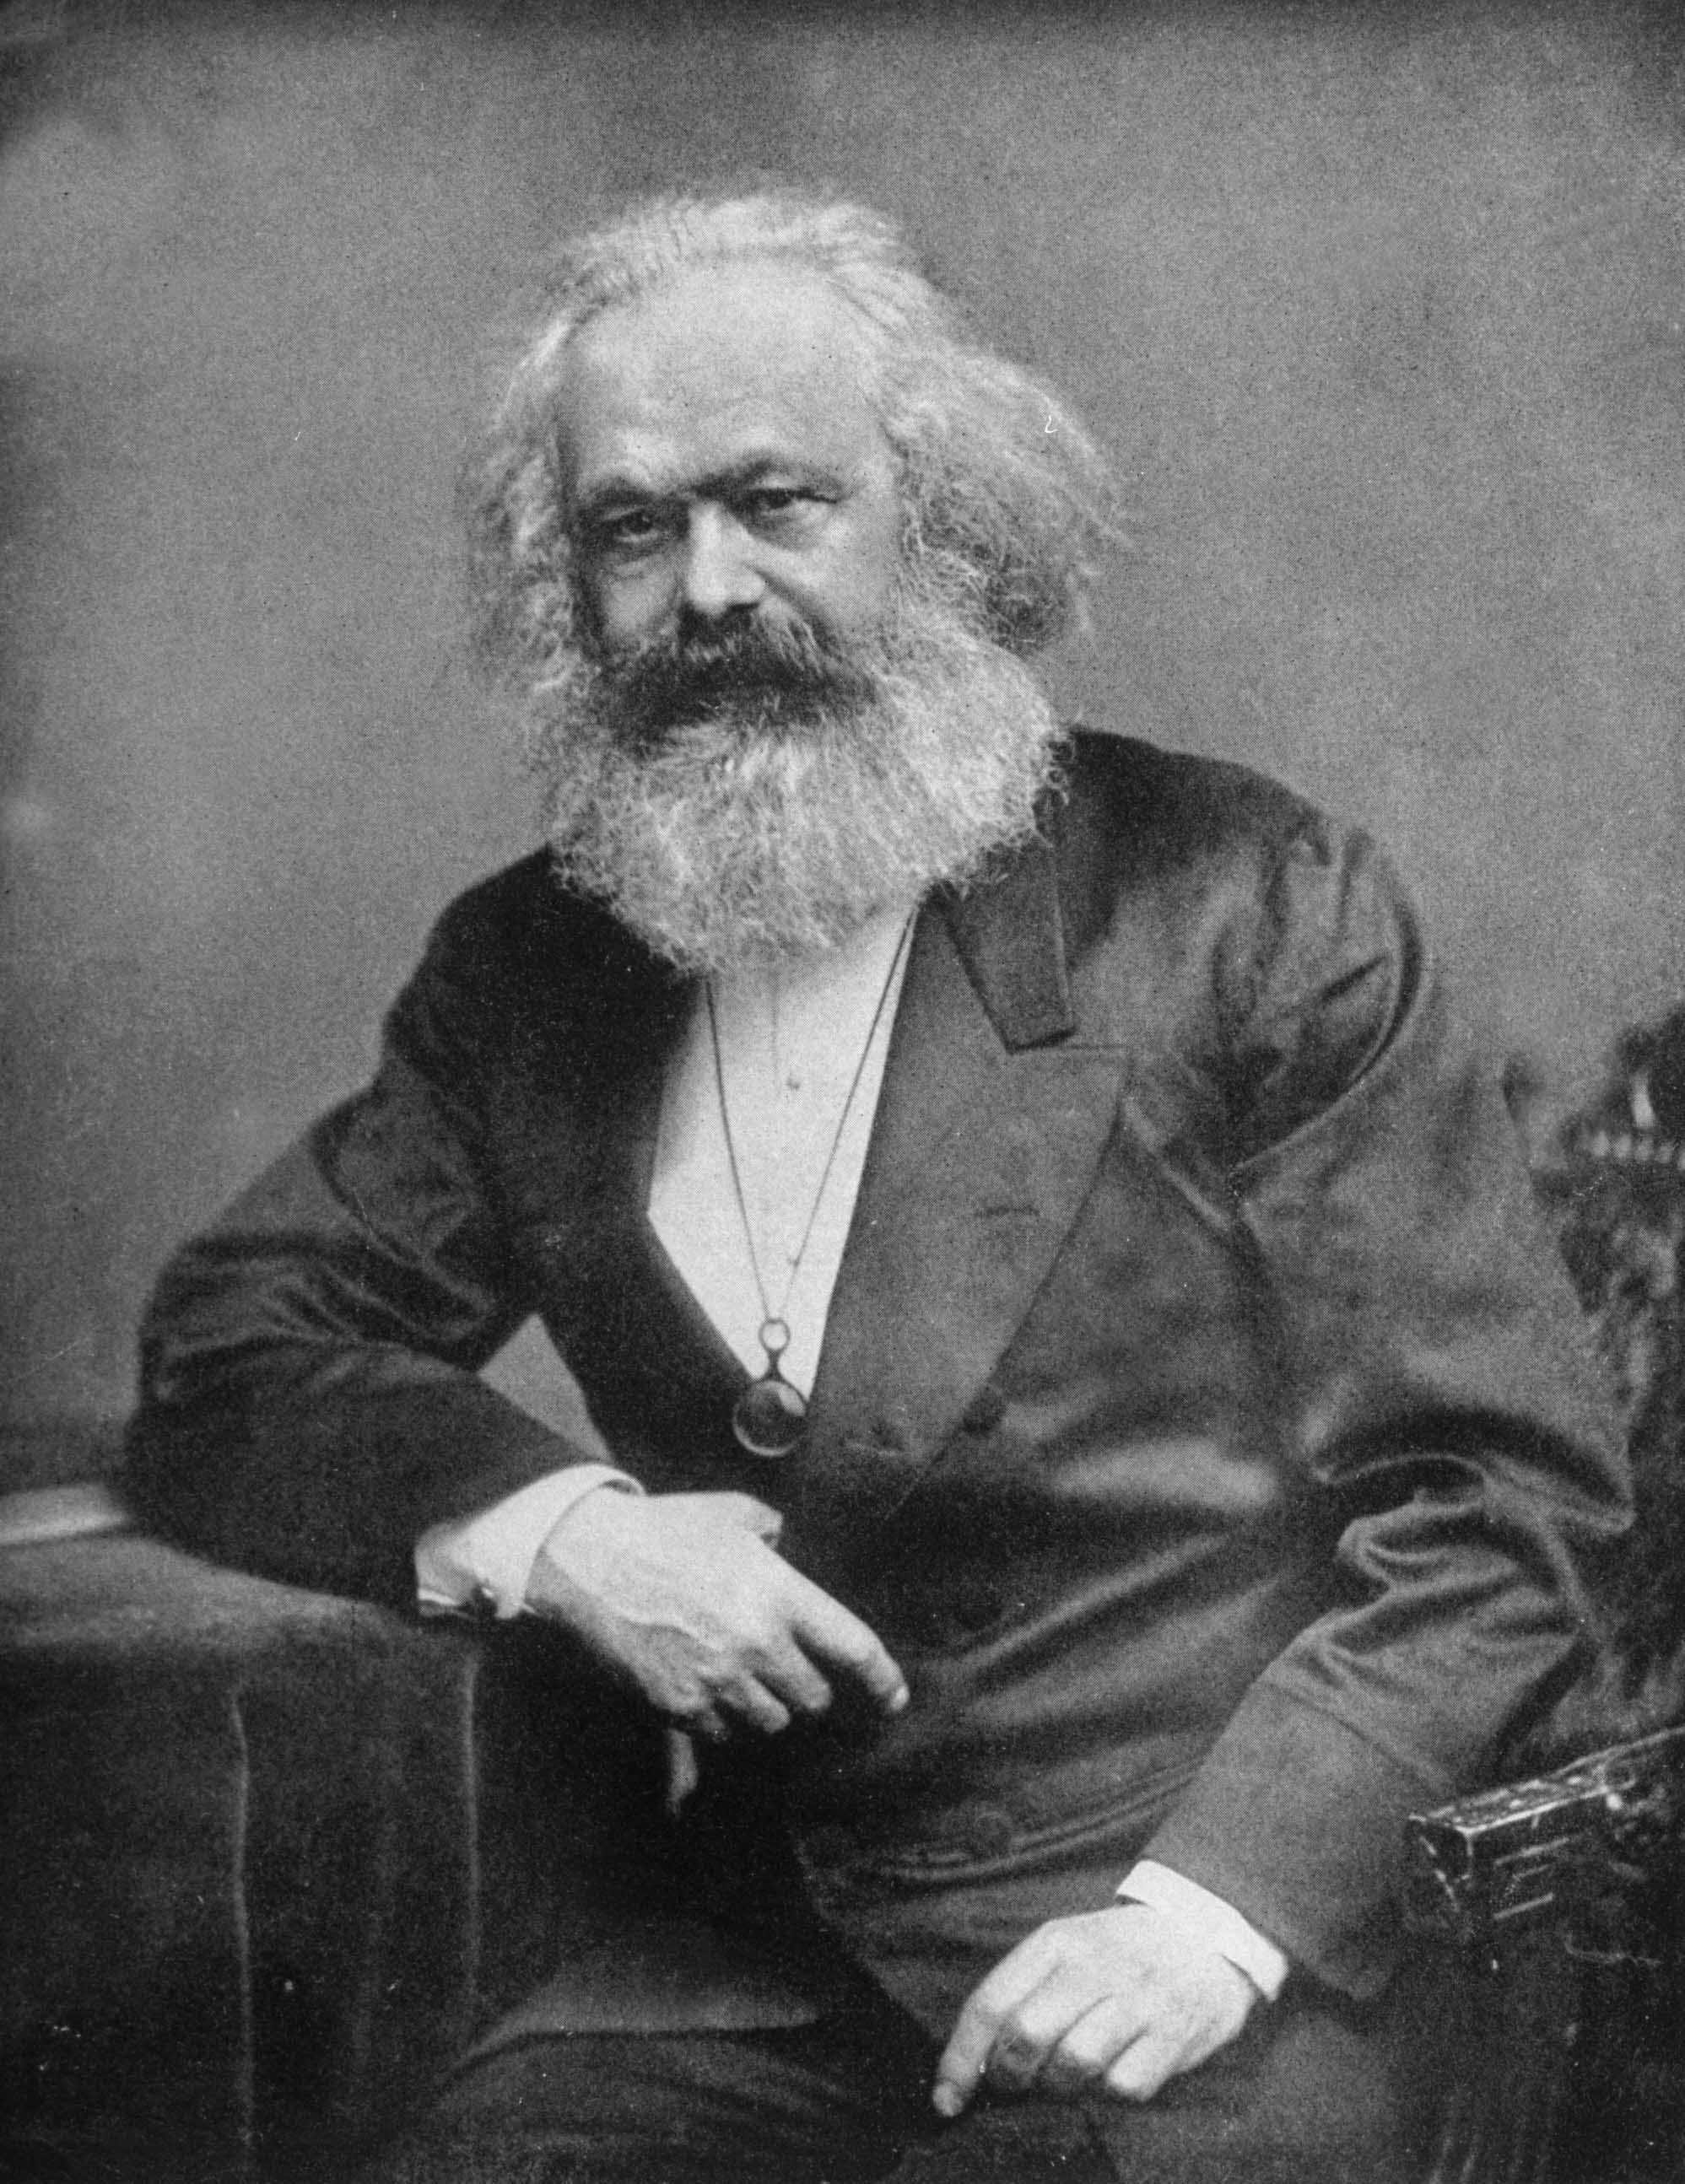 The 19th-century political and social theorist Karl Marx; co-author (with Friedrich Engels) of The Communist Manifesto (1848). (Photo by Time Life Pictures/Mansell/The LIFE Picture Collection/Getty Images)